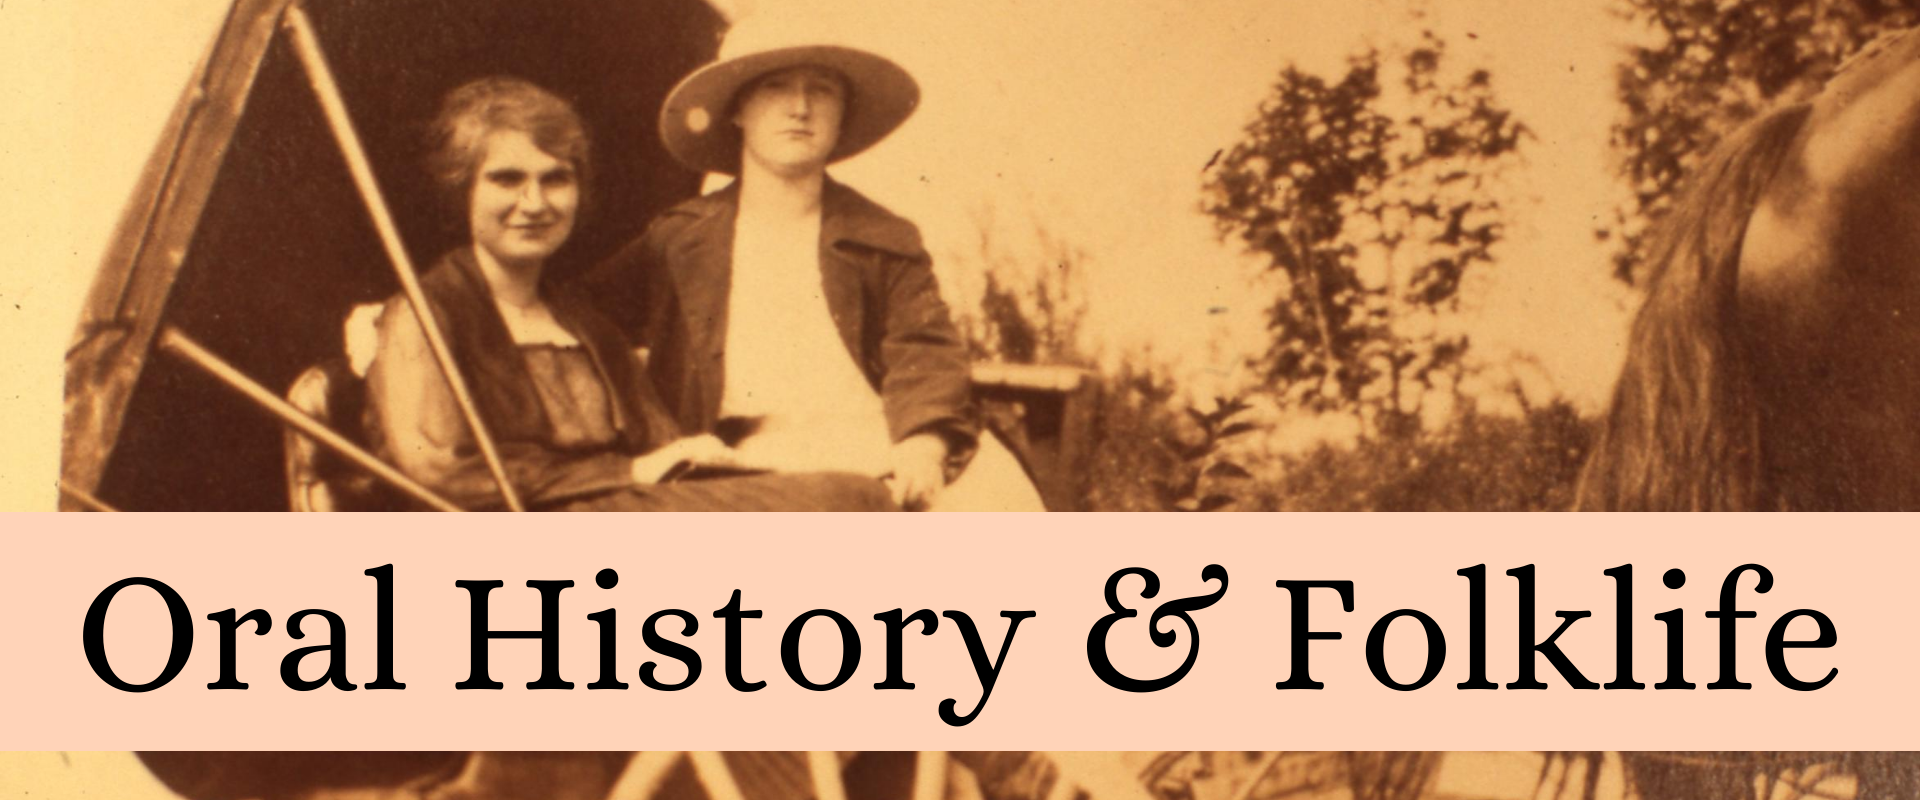 Oral History & Folklife Cover Photograph